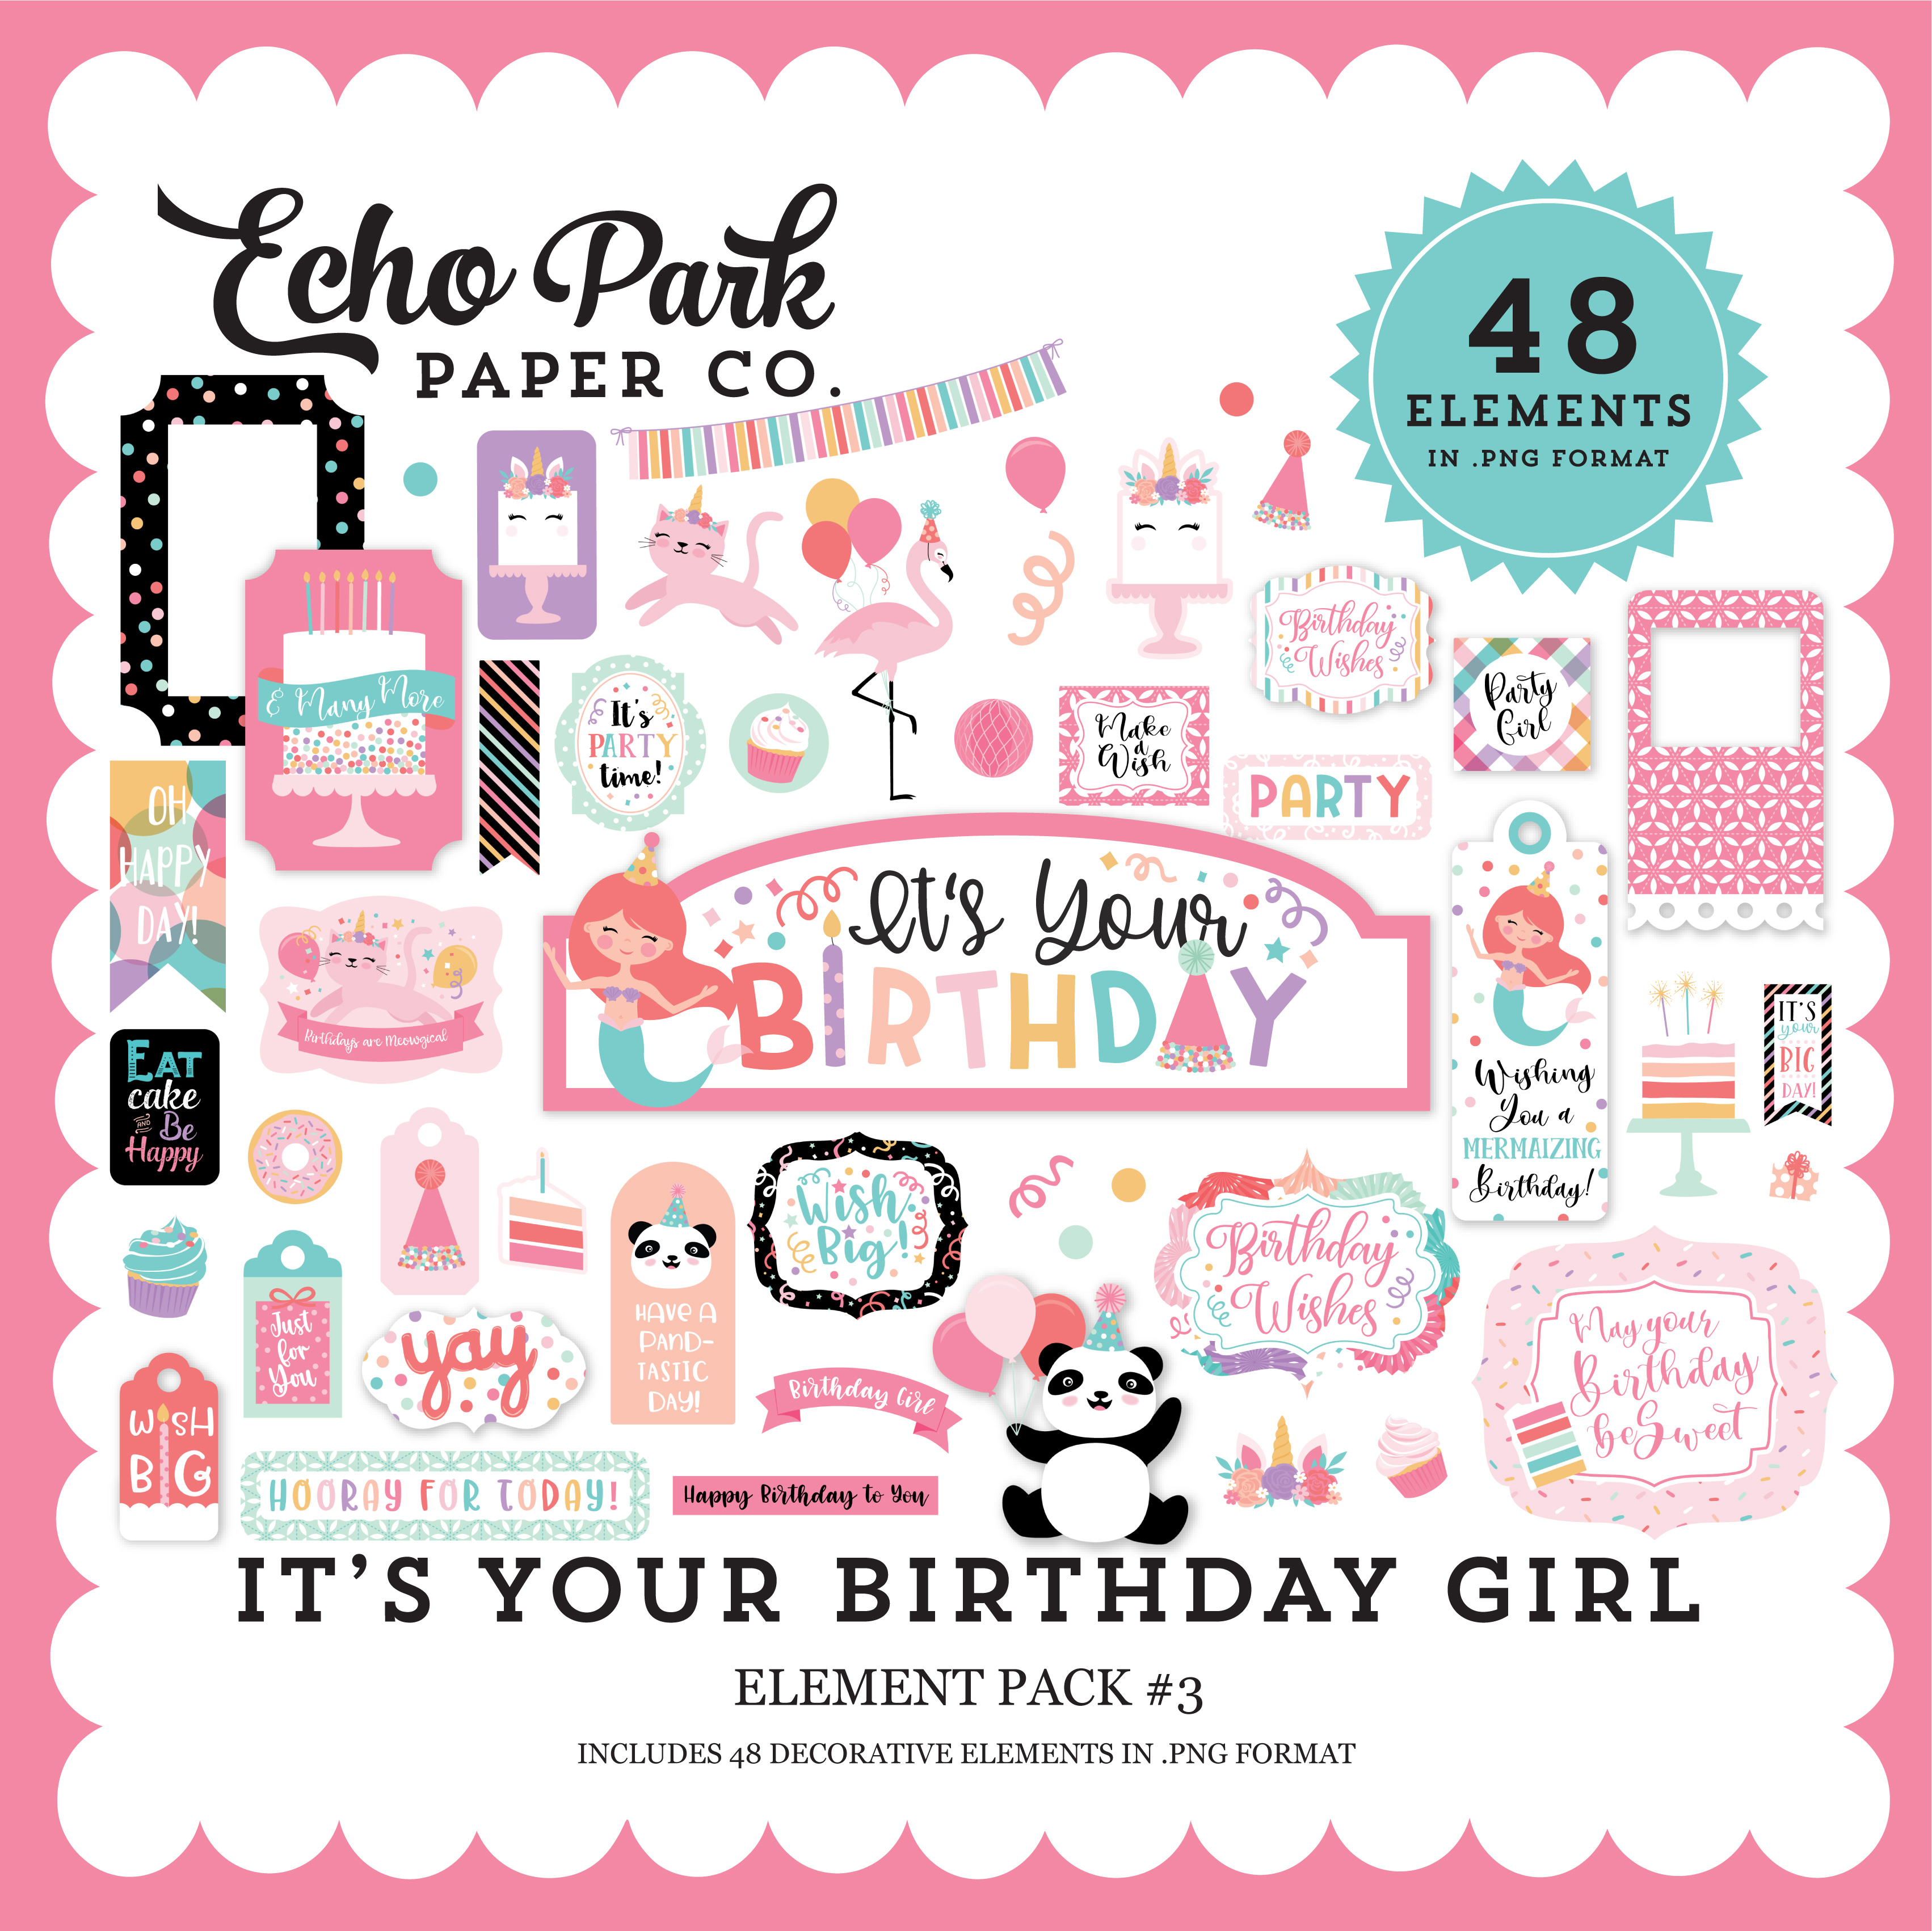 It's Your Birthday Girl Element Pack #3